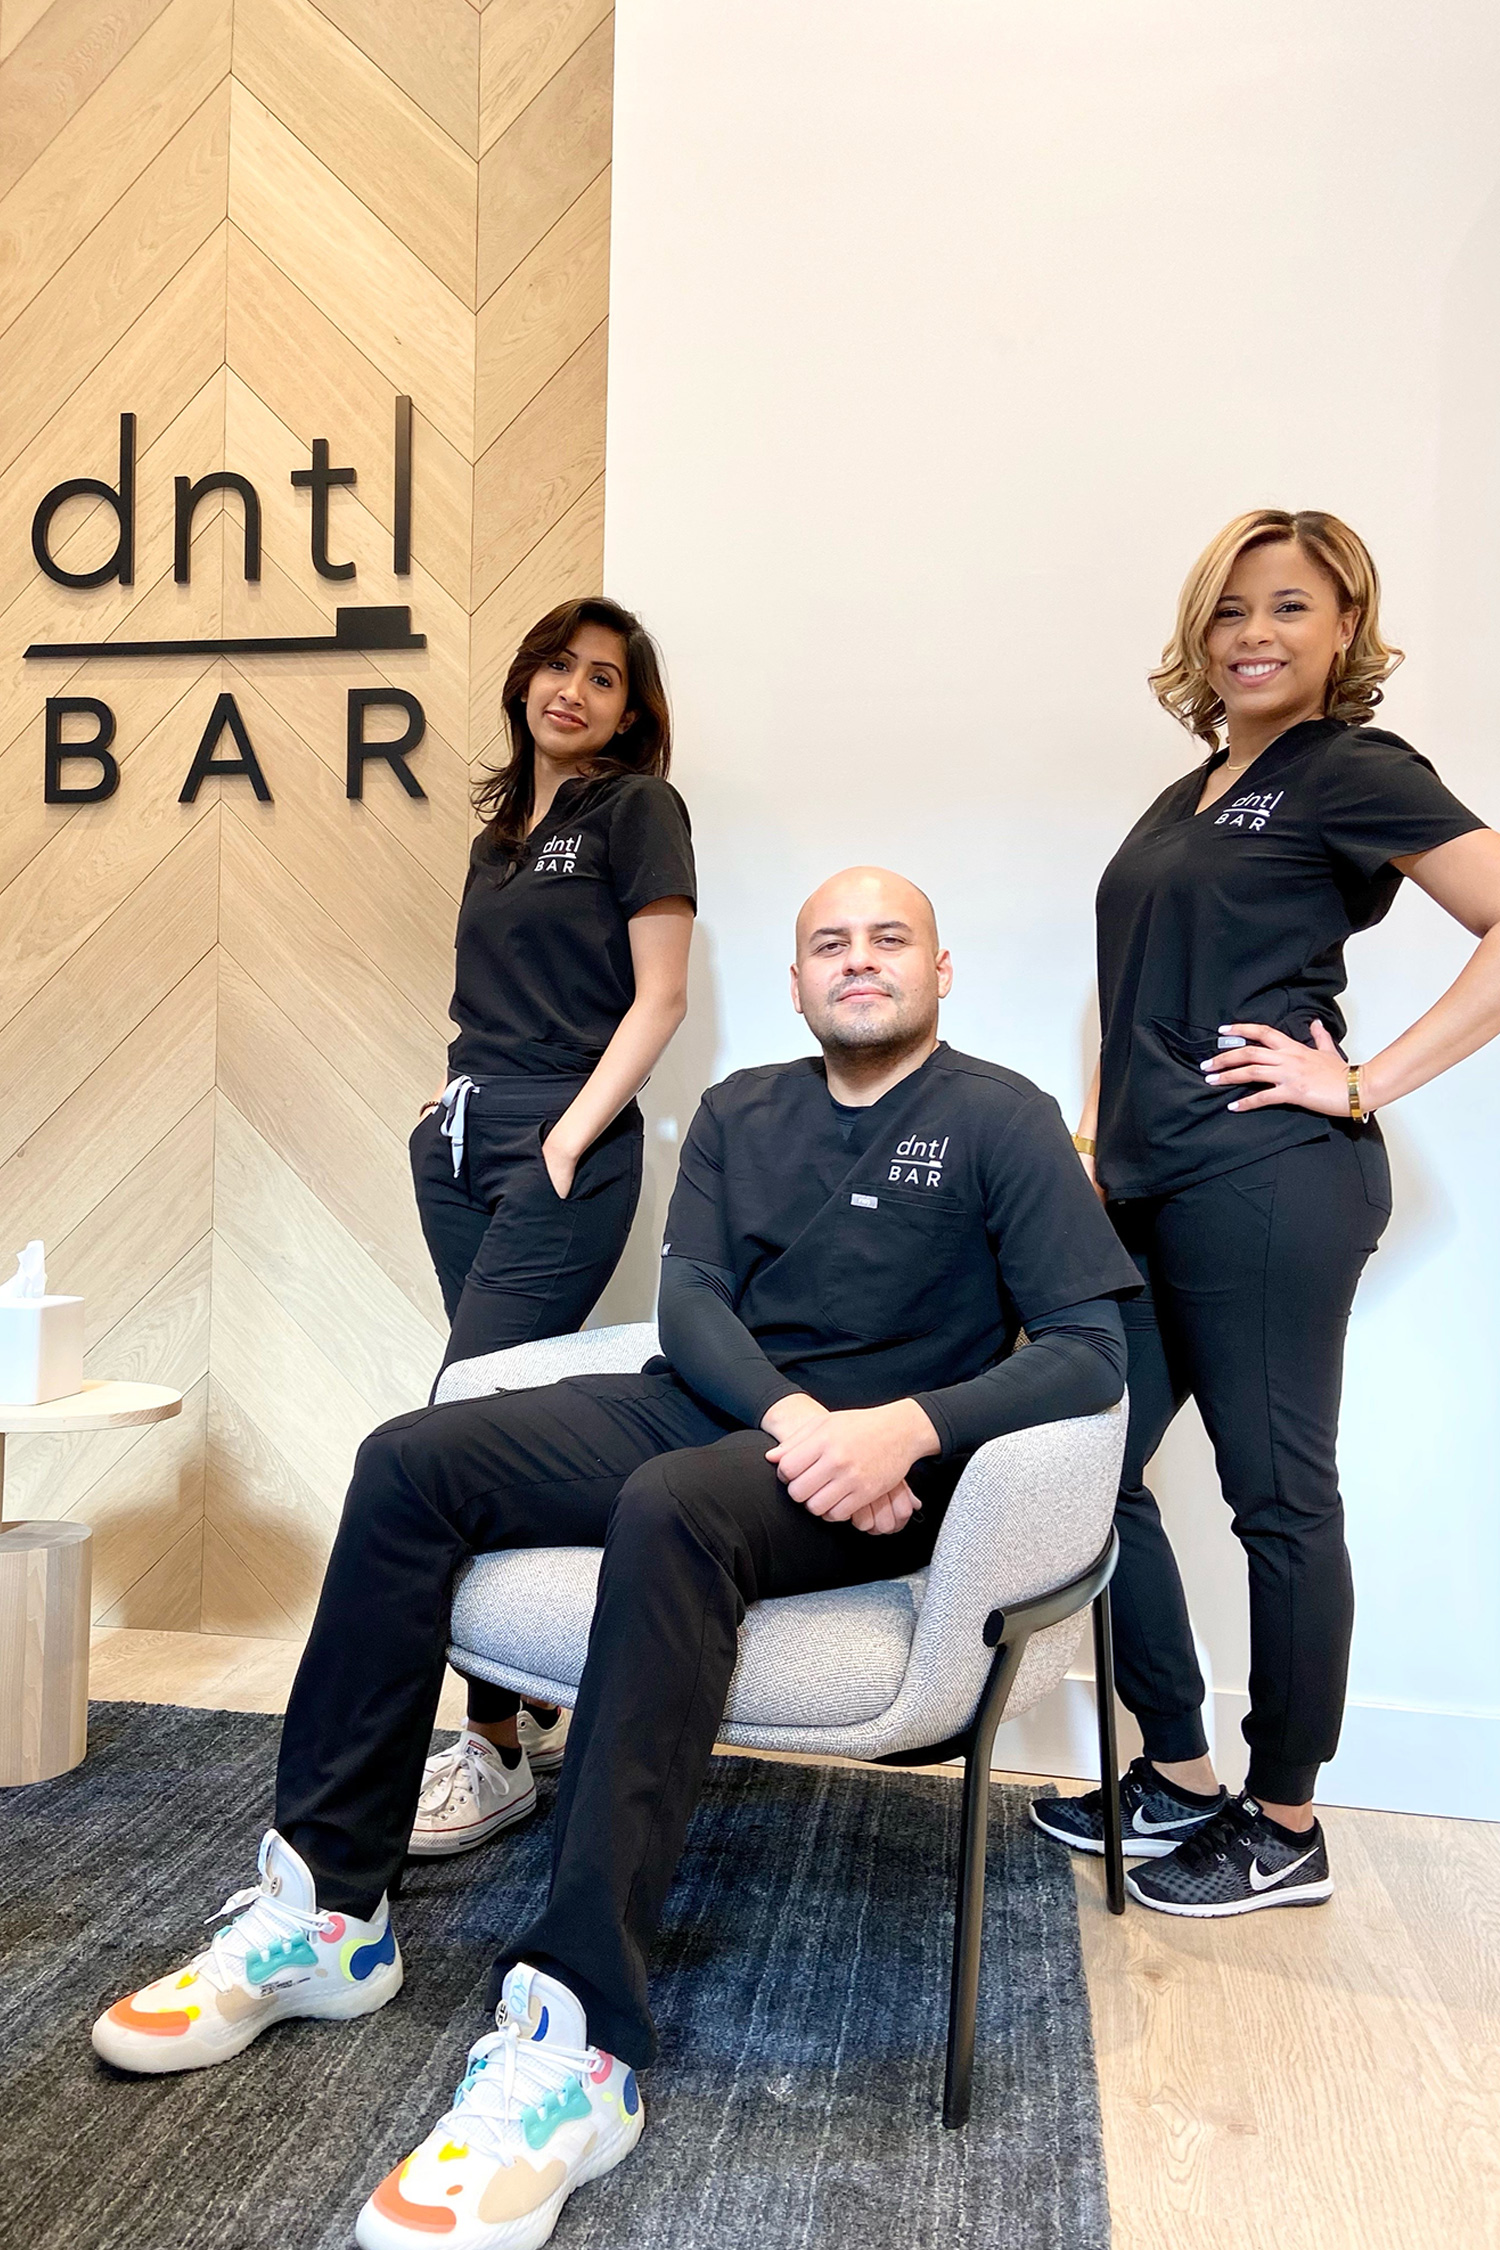 dntl bar employees in the lobby facing the camera. 1 employee is sitting and 2 employees are standing behind him.